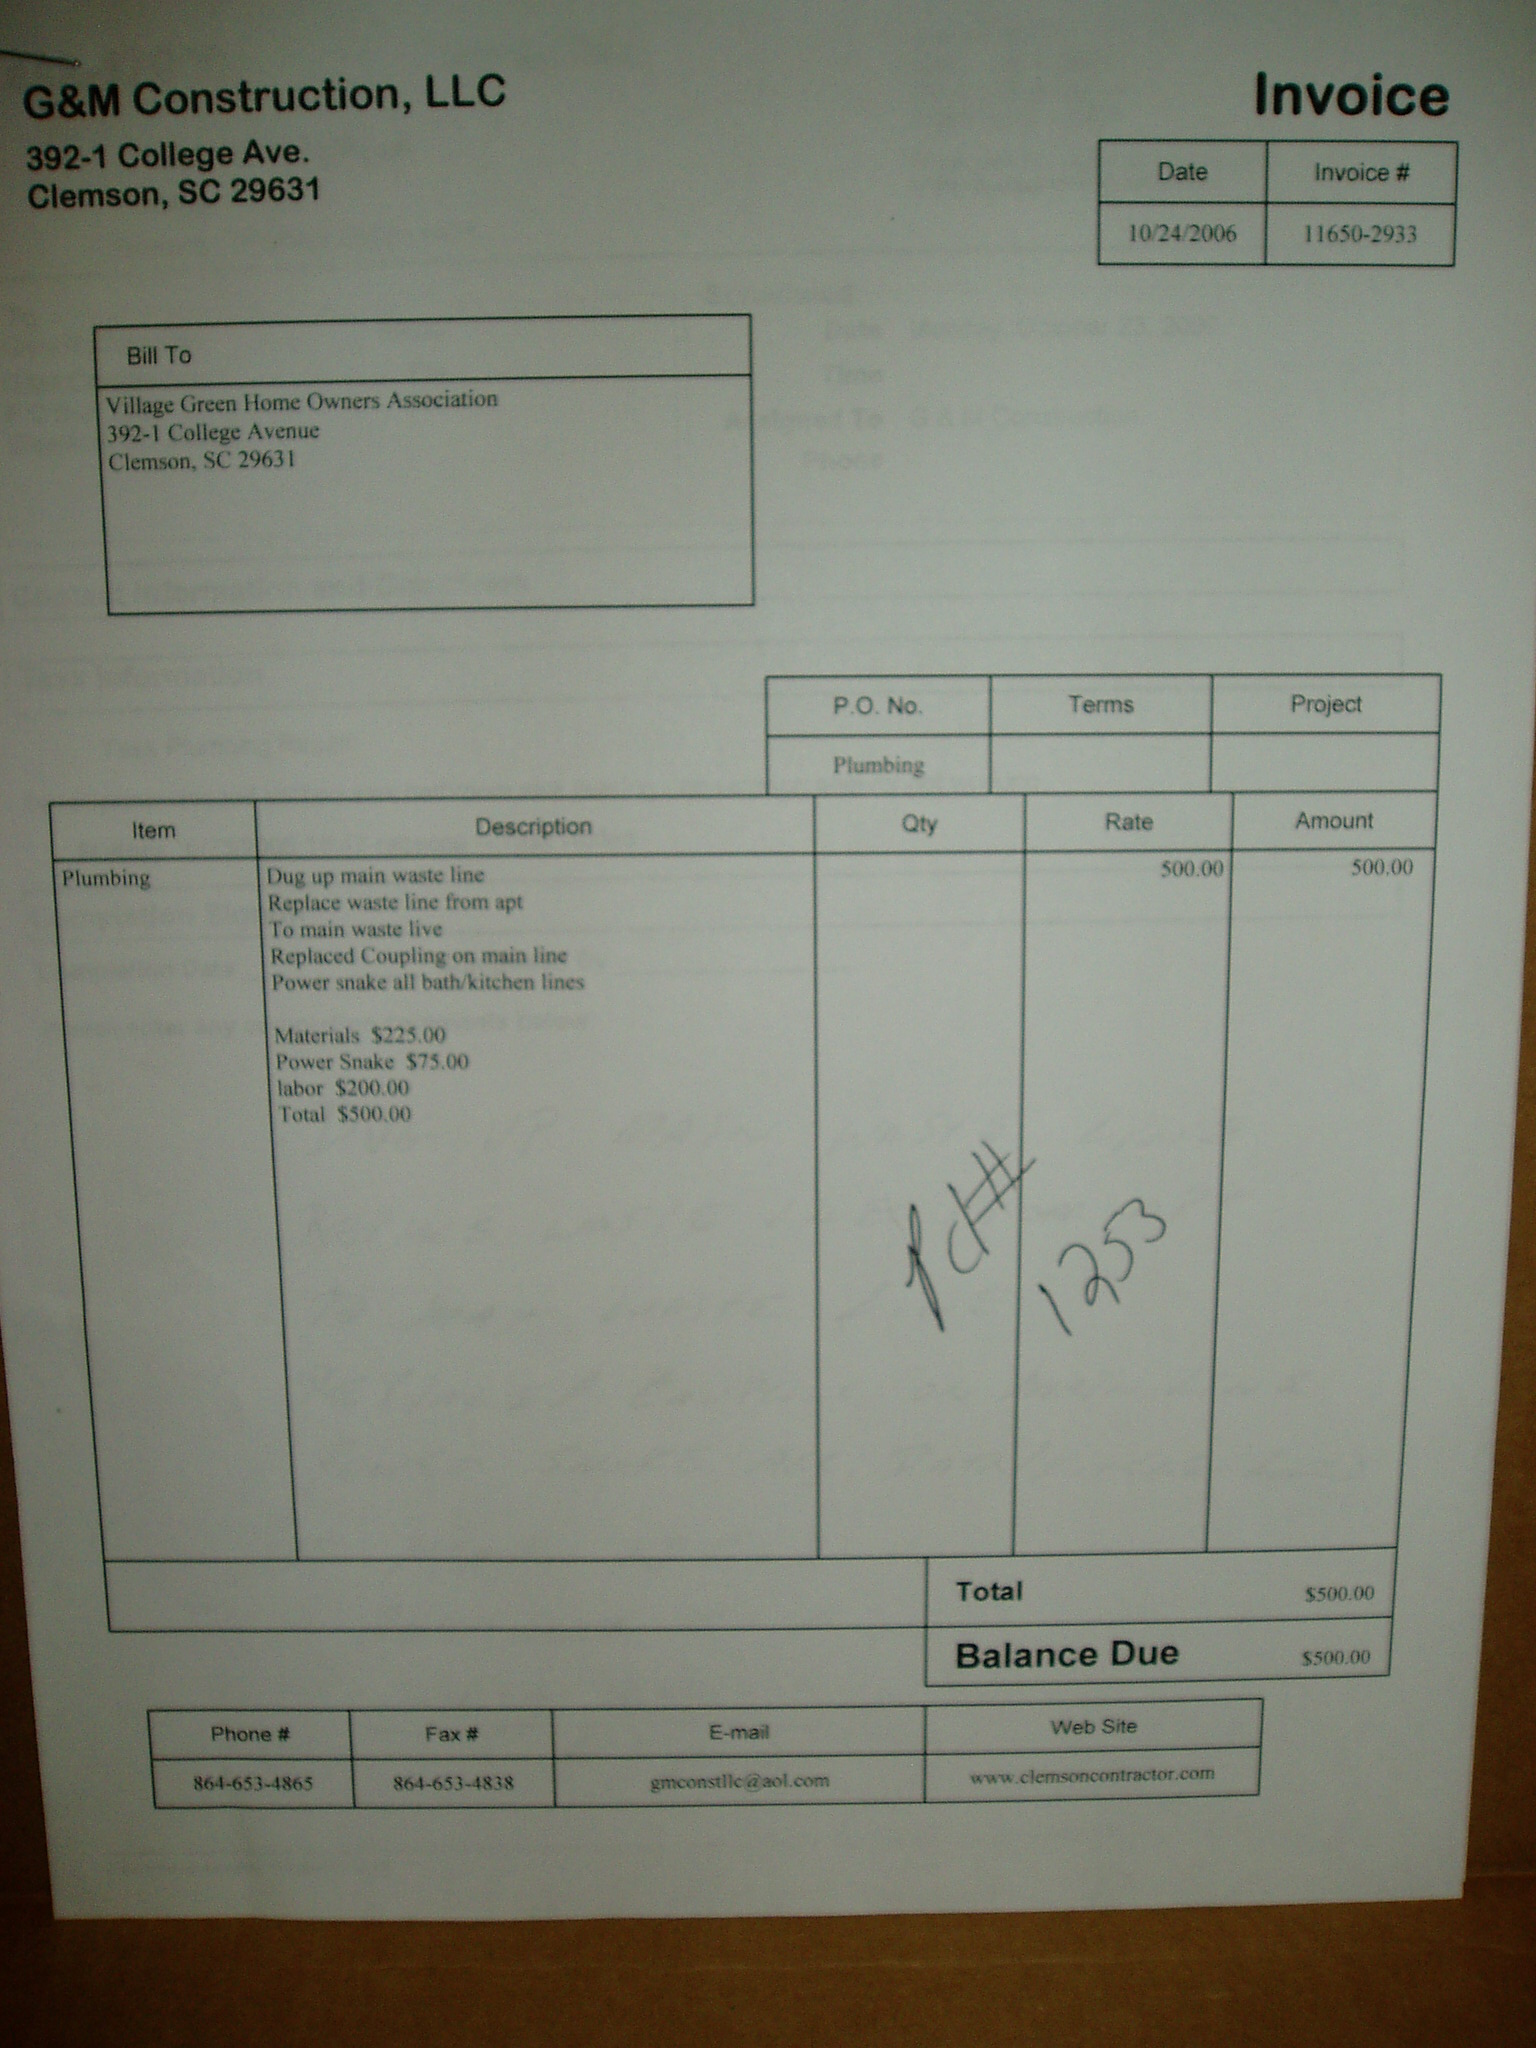 Date 10 24 06 Unit Missing From Invoice Cost 50000